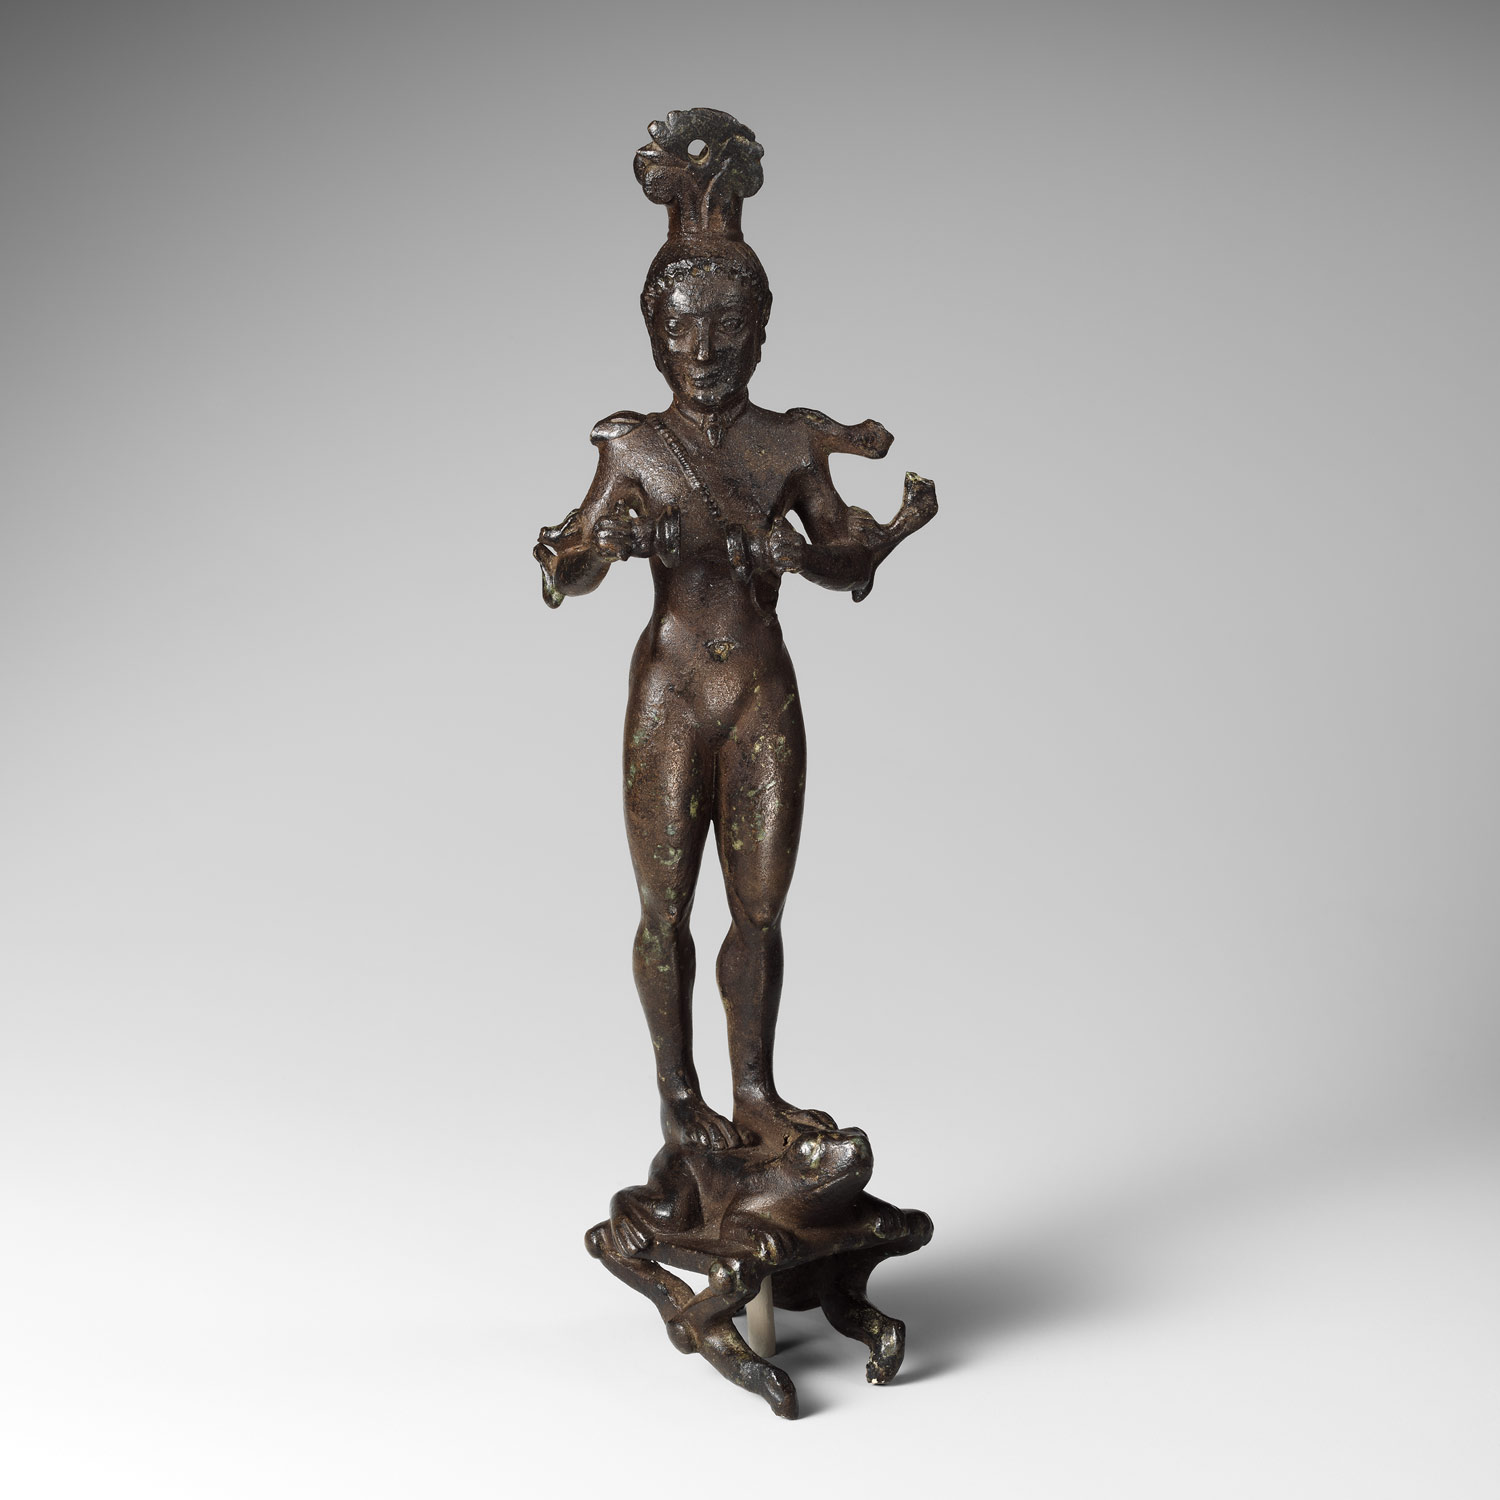 art and craft in archaic sparta essay heilbrunn timeline of bronze mirror support in the form of a nude girl